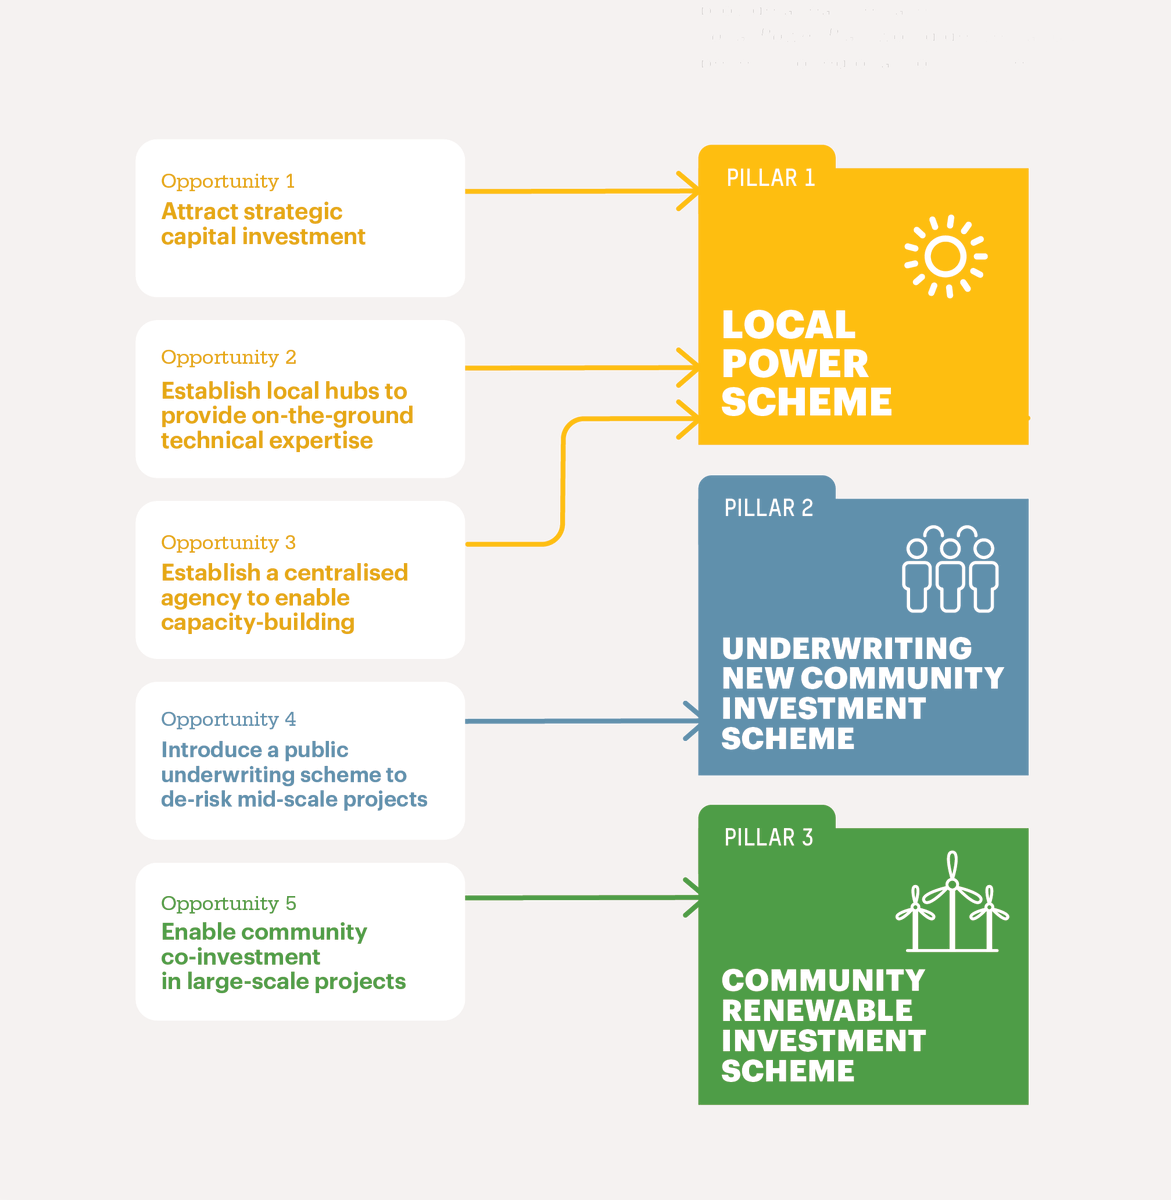 Through a 6-month co-design process with experts across Australia, we identified 5 key opportunities to unlock the benefits of locally-owned renewables for everyday people in regional Australia. Our  #LocalPowerPlan would introduce 3 new schemes to capture those opportunities.